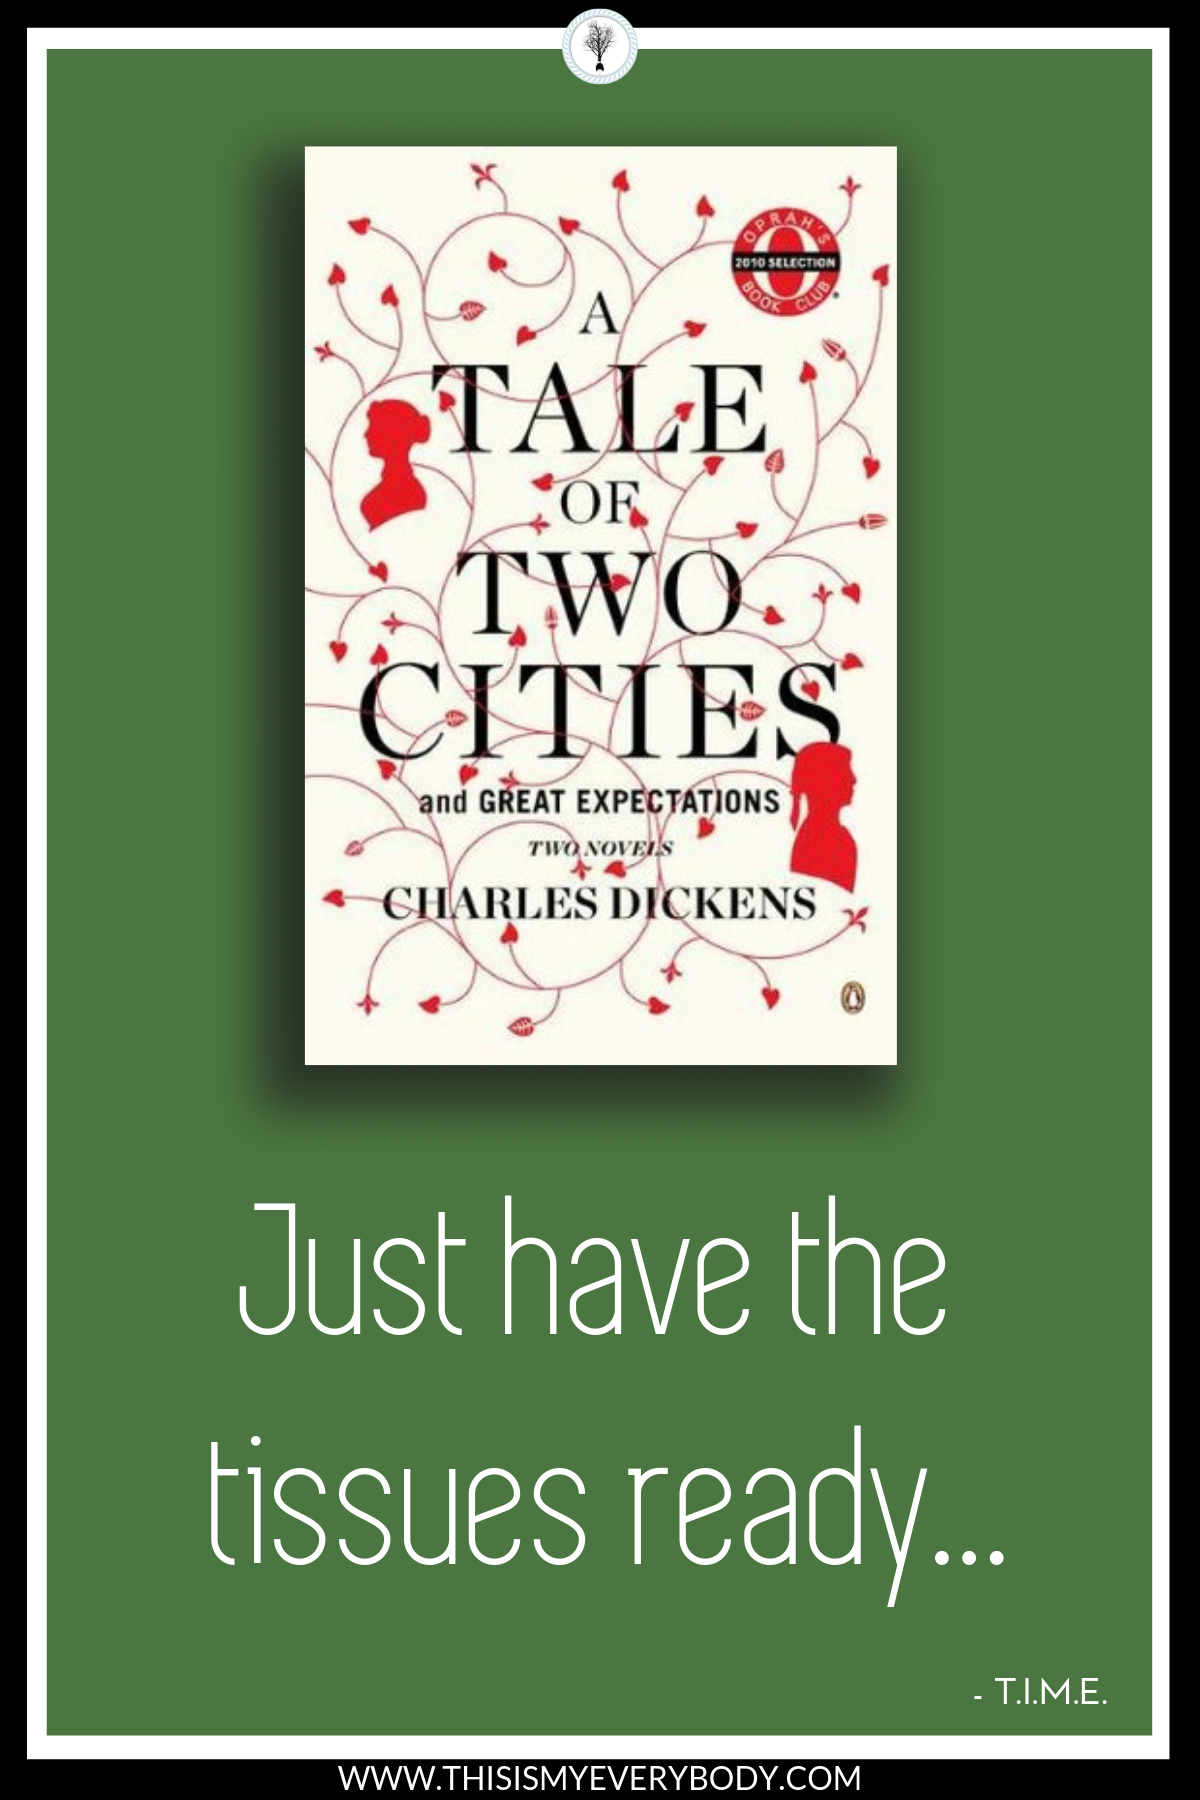 The last few pages completely slay me. When I read this for the first time, I was sobbing, sobbing, sobbing. Just have the tissues ready… A Tale of Two Cities by Charles Dickens